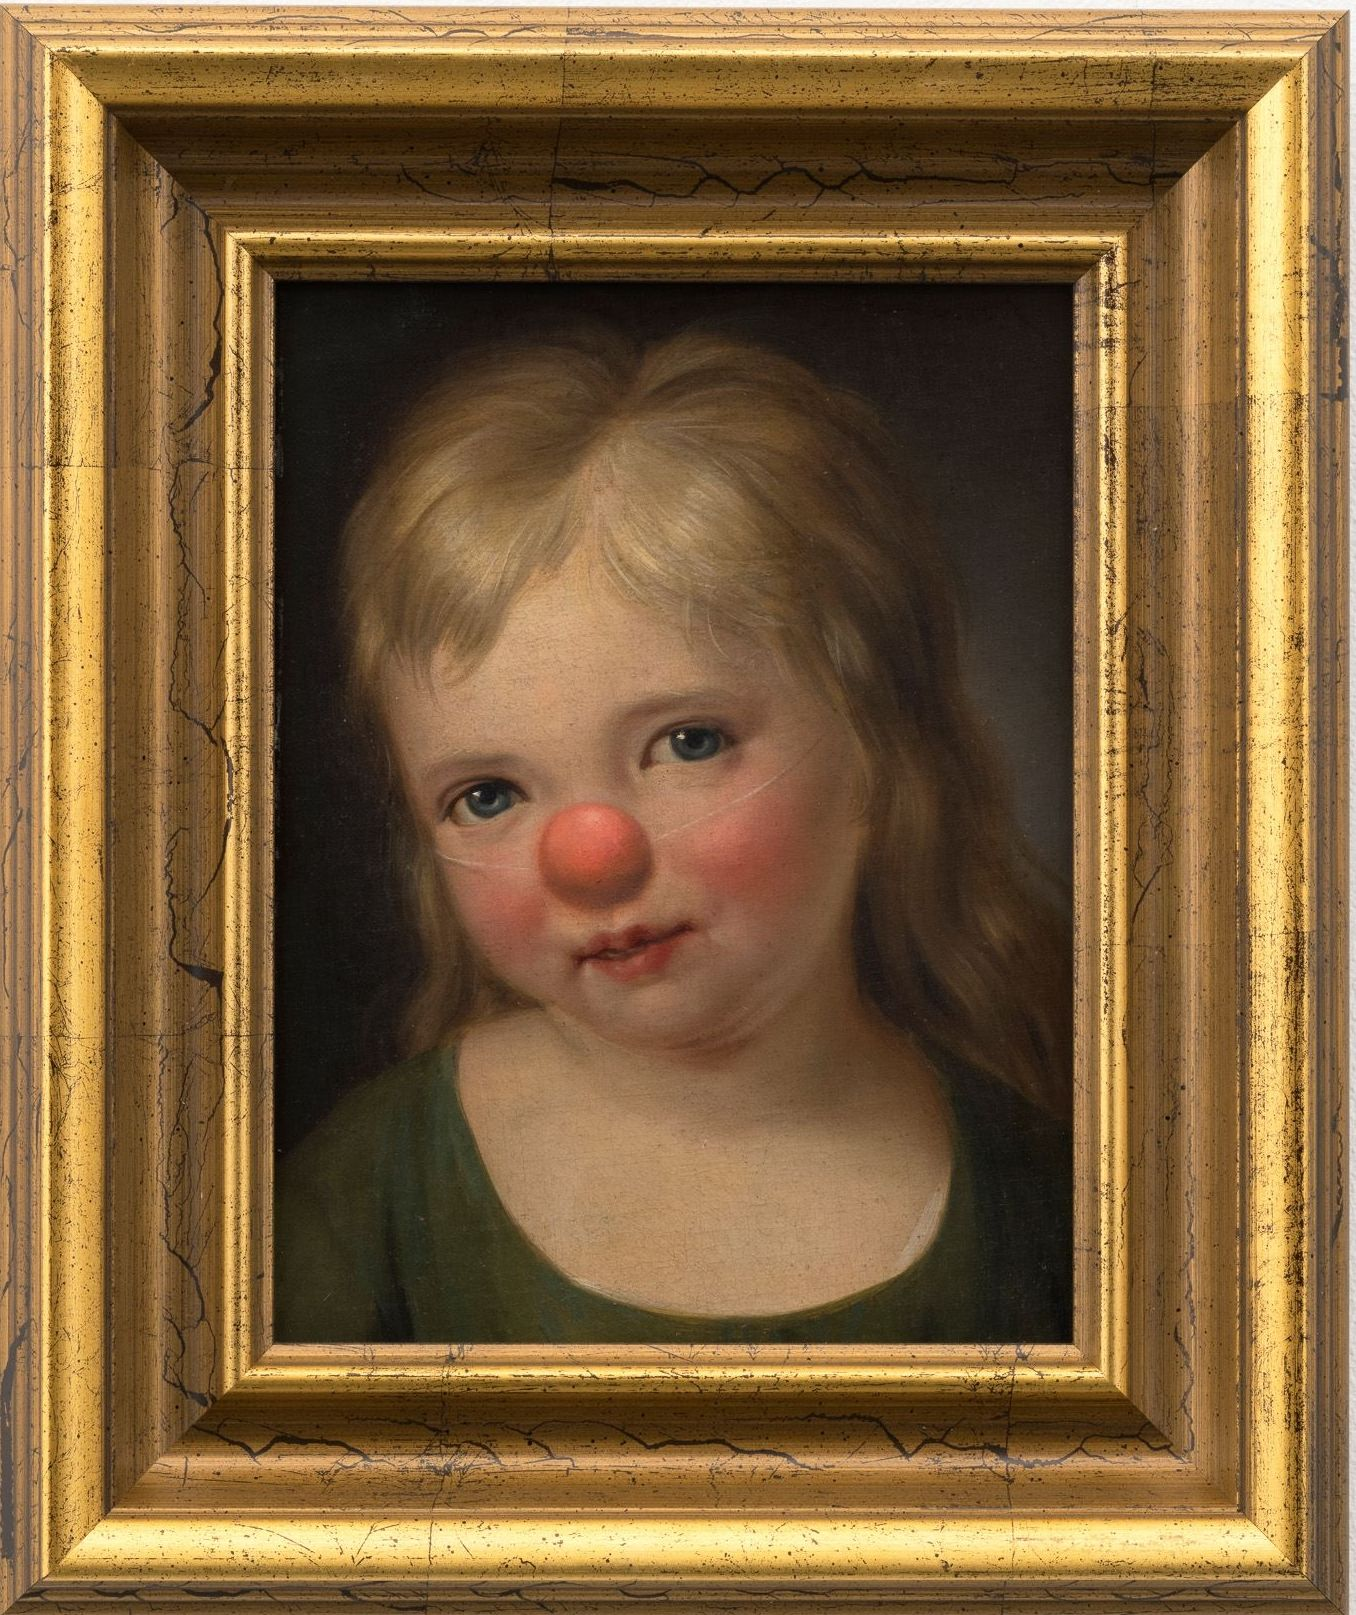 Hans-Peter Feldmann, Child with red nose